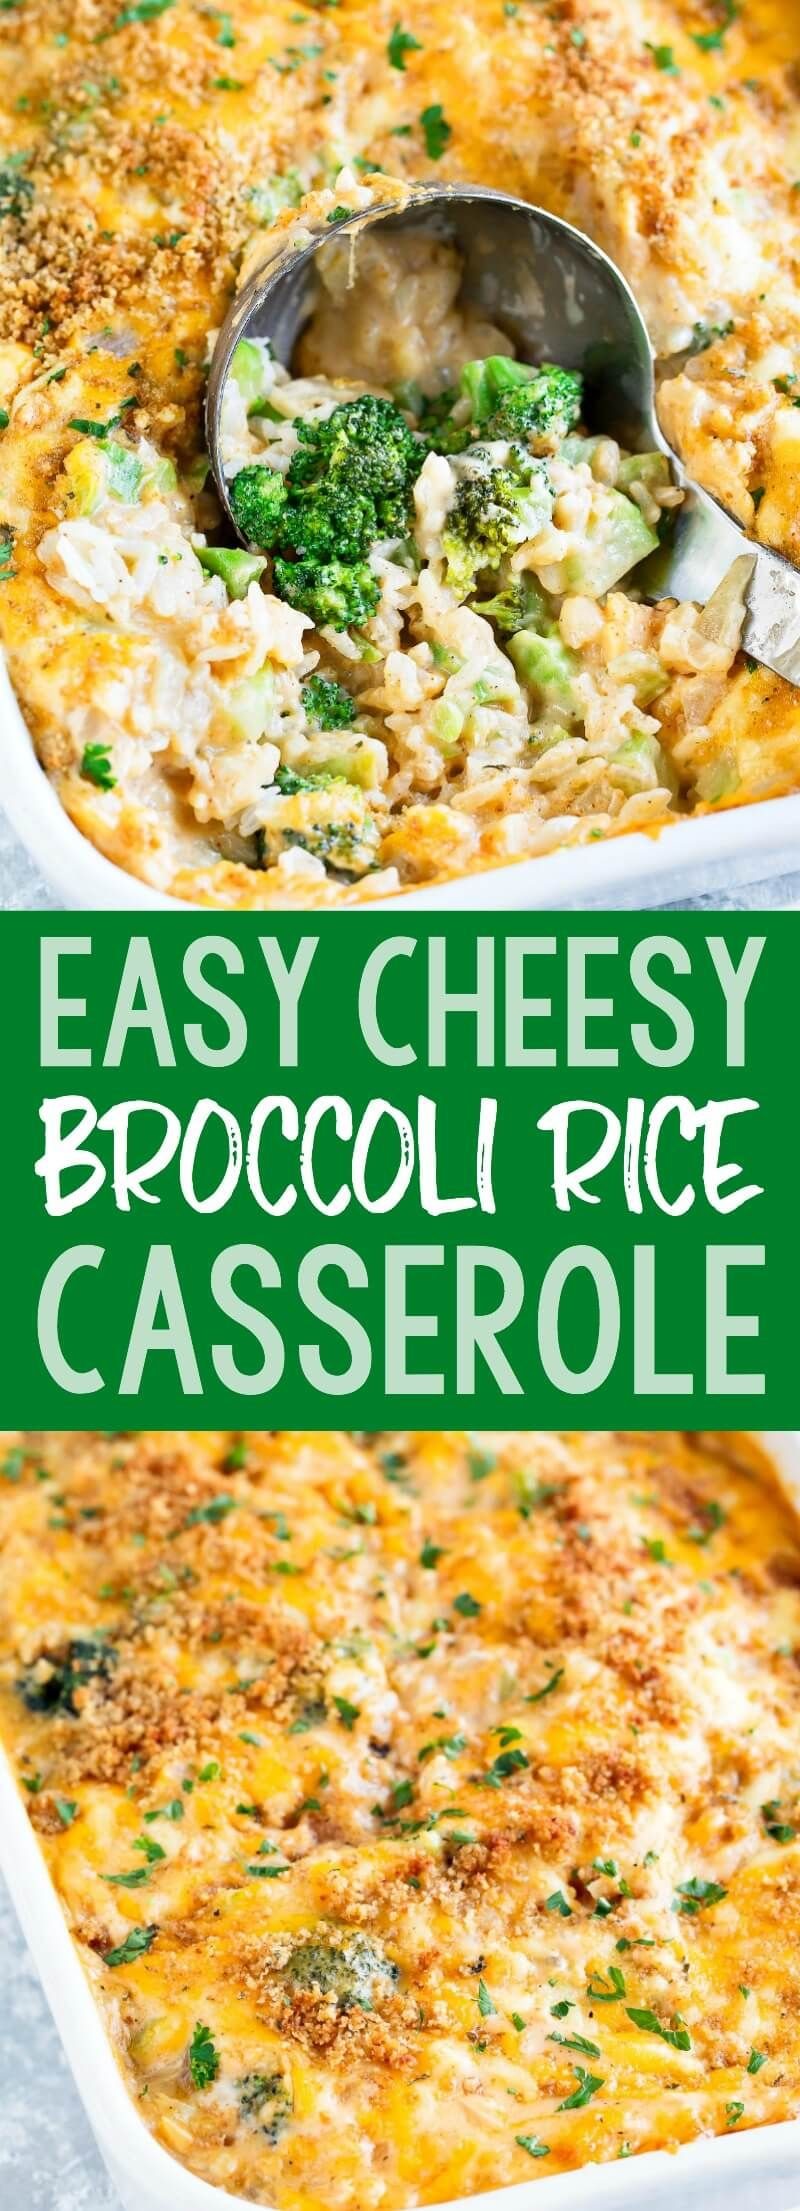 Photo of Cheesy Broccoli Rice Casserole – We Love this Vegetarian Rec…